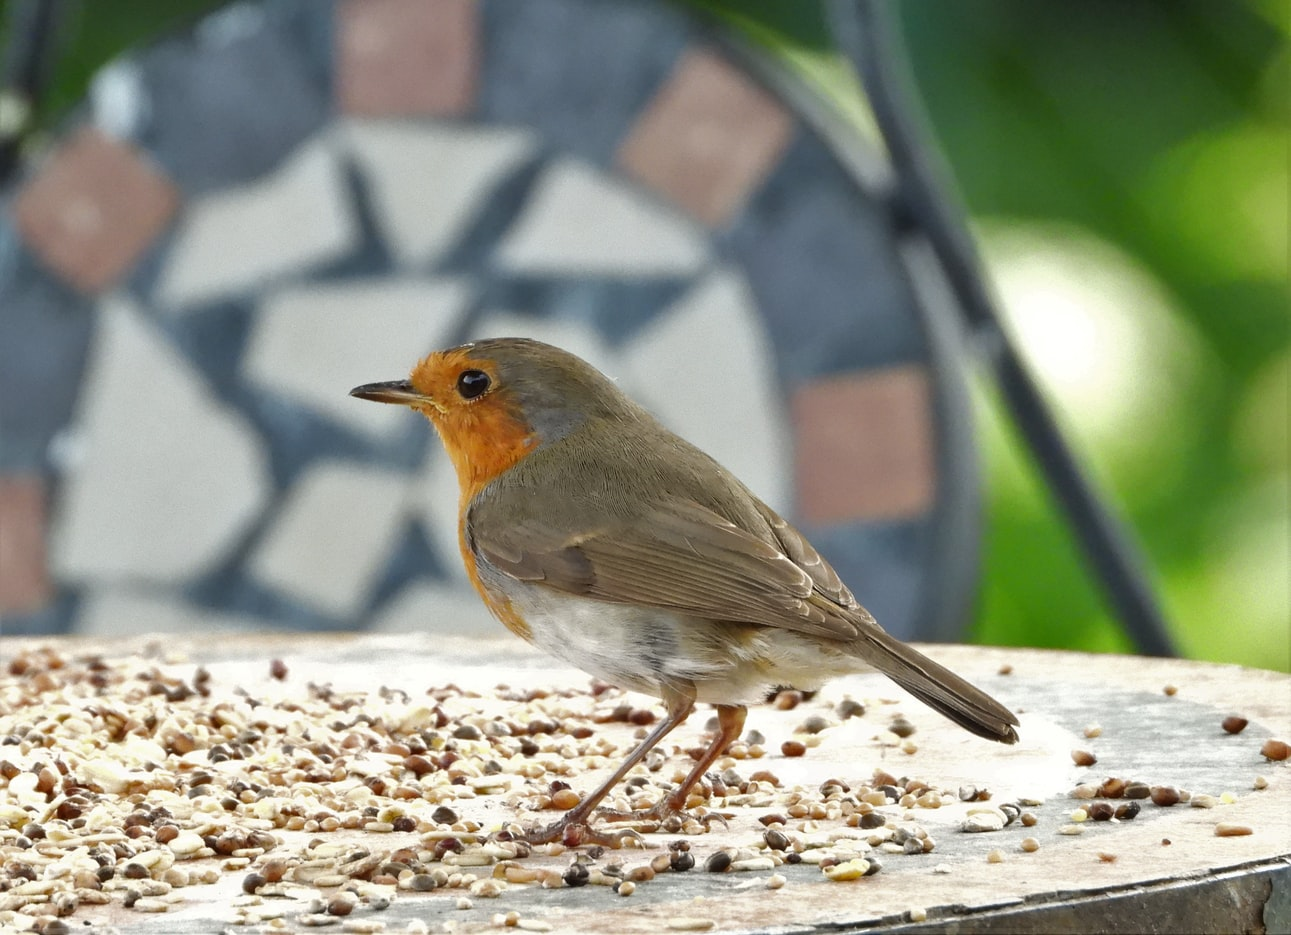 can birds eat instant oatmeal